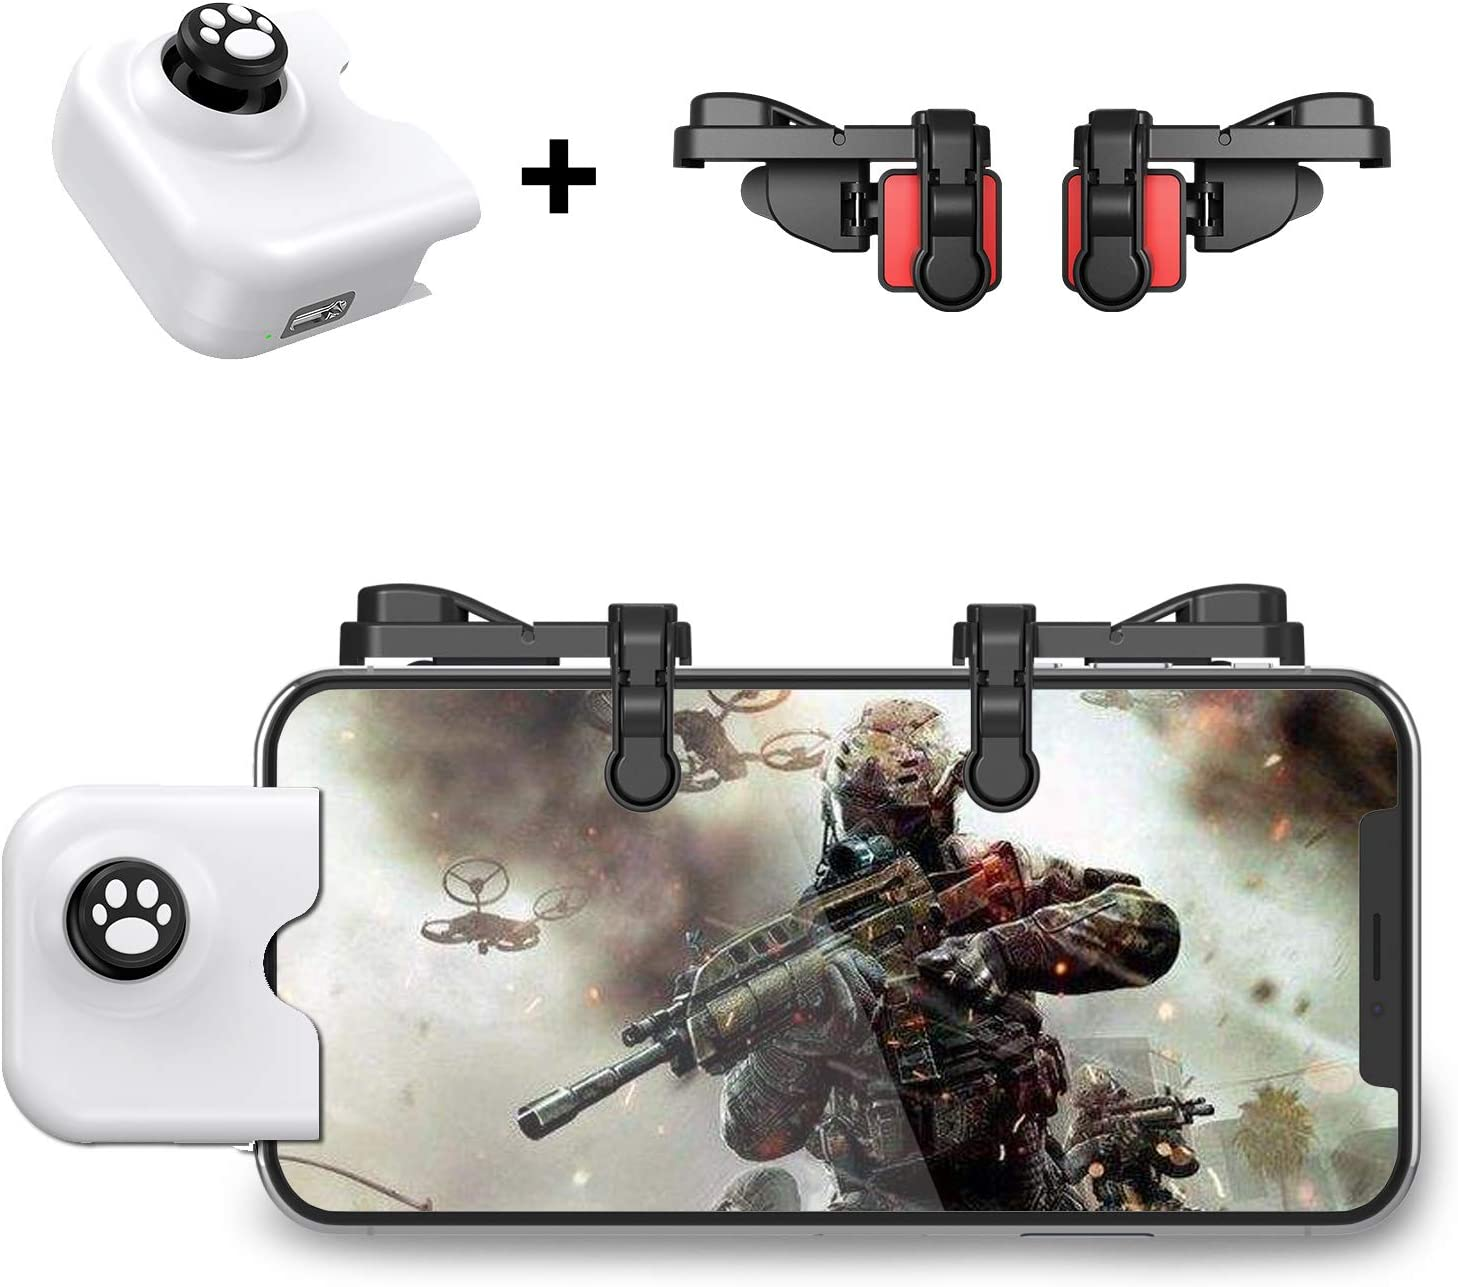 Mobile Game Elegant Controller for iPhone iOS or Popular shop is the lowest price challenge Gam IFYOO Later 13.4